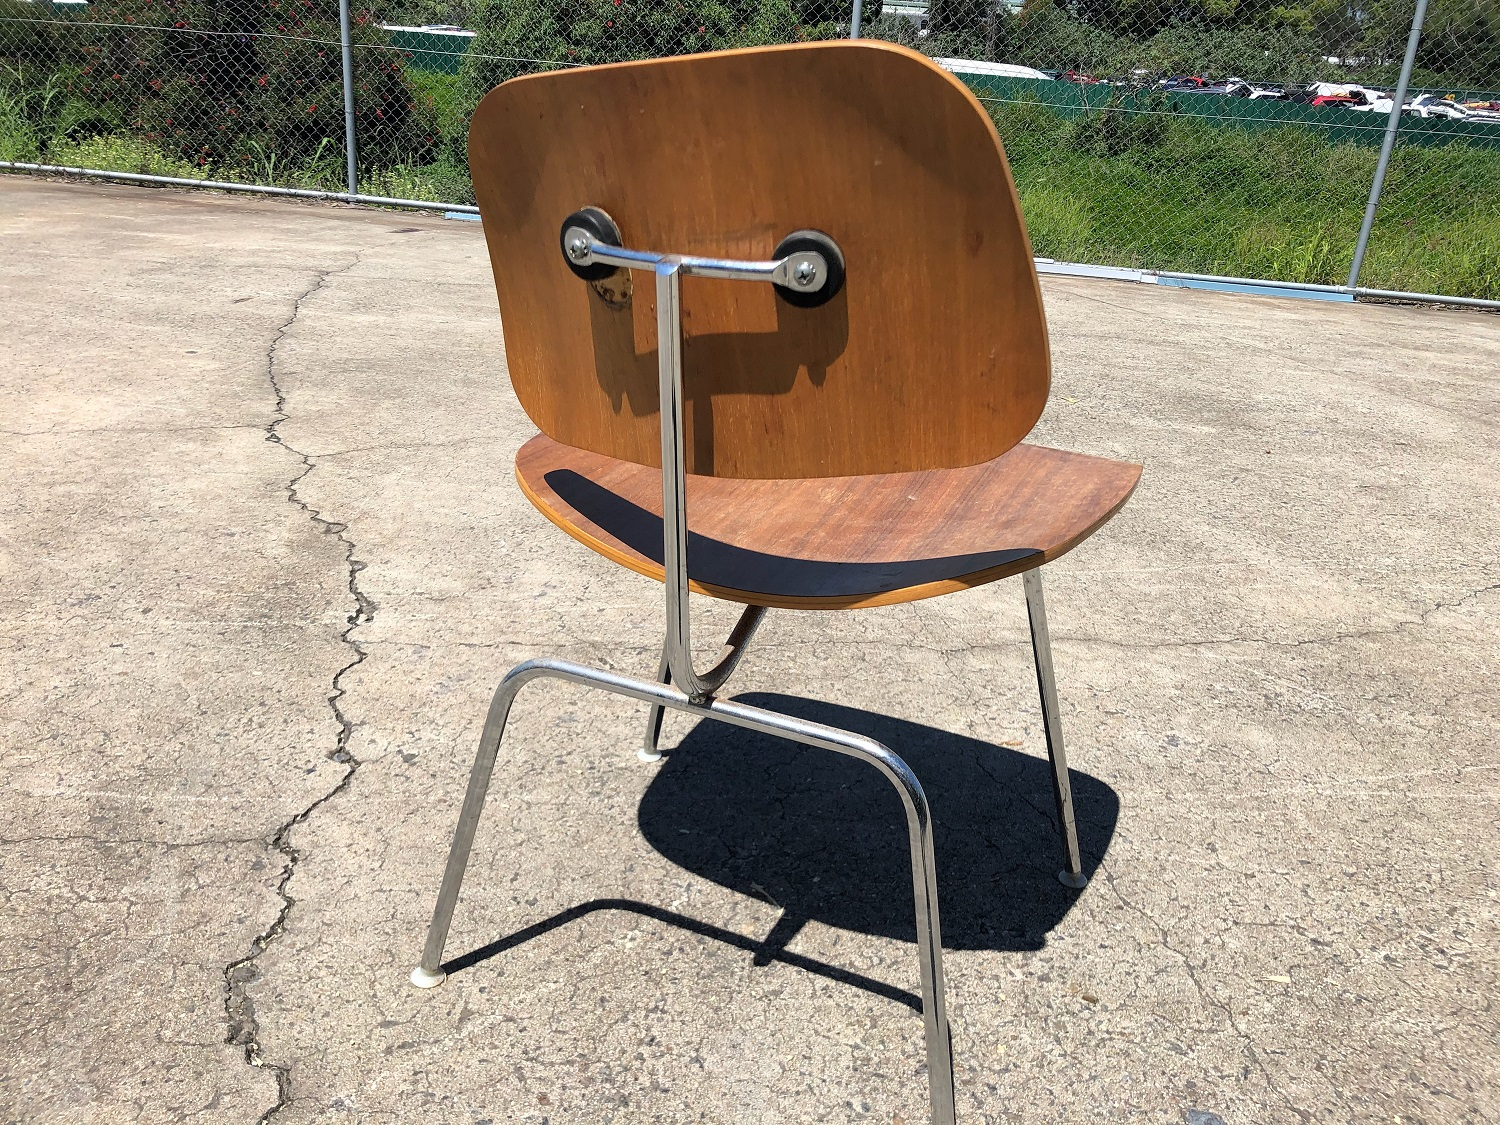 Eames chairs are not meant to look like this